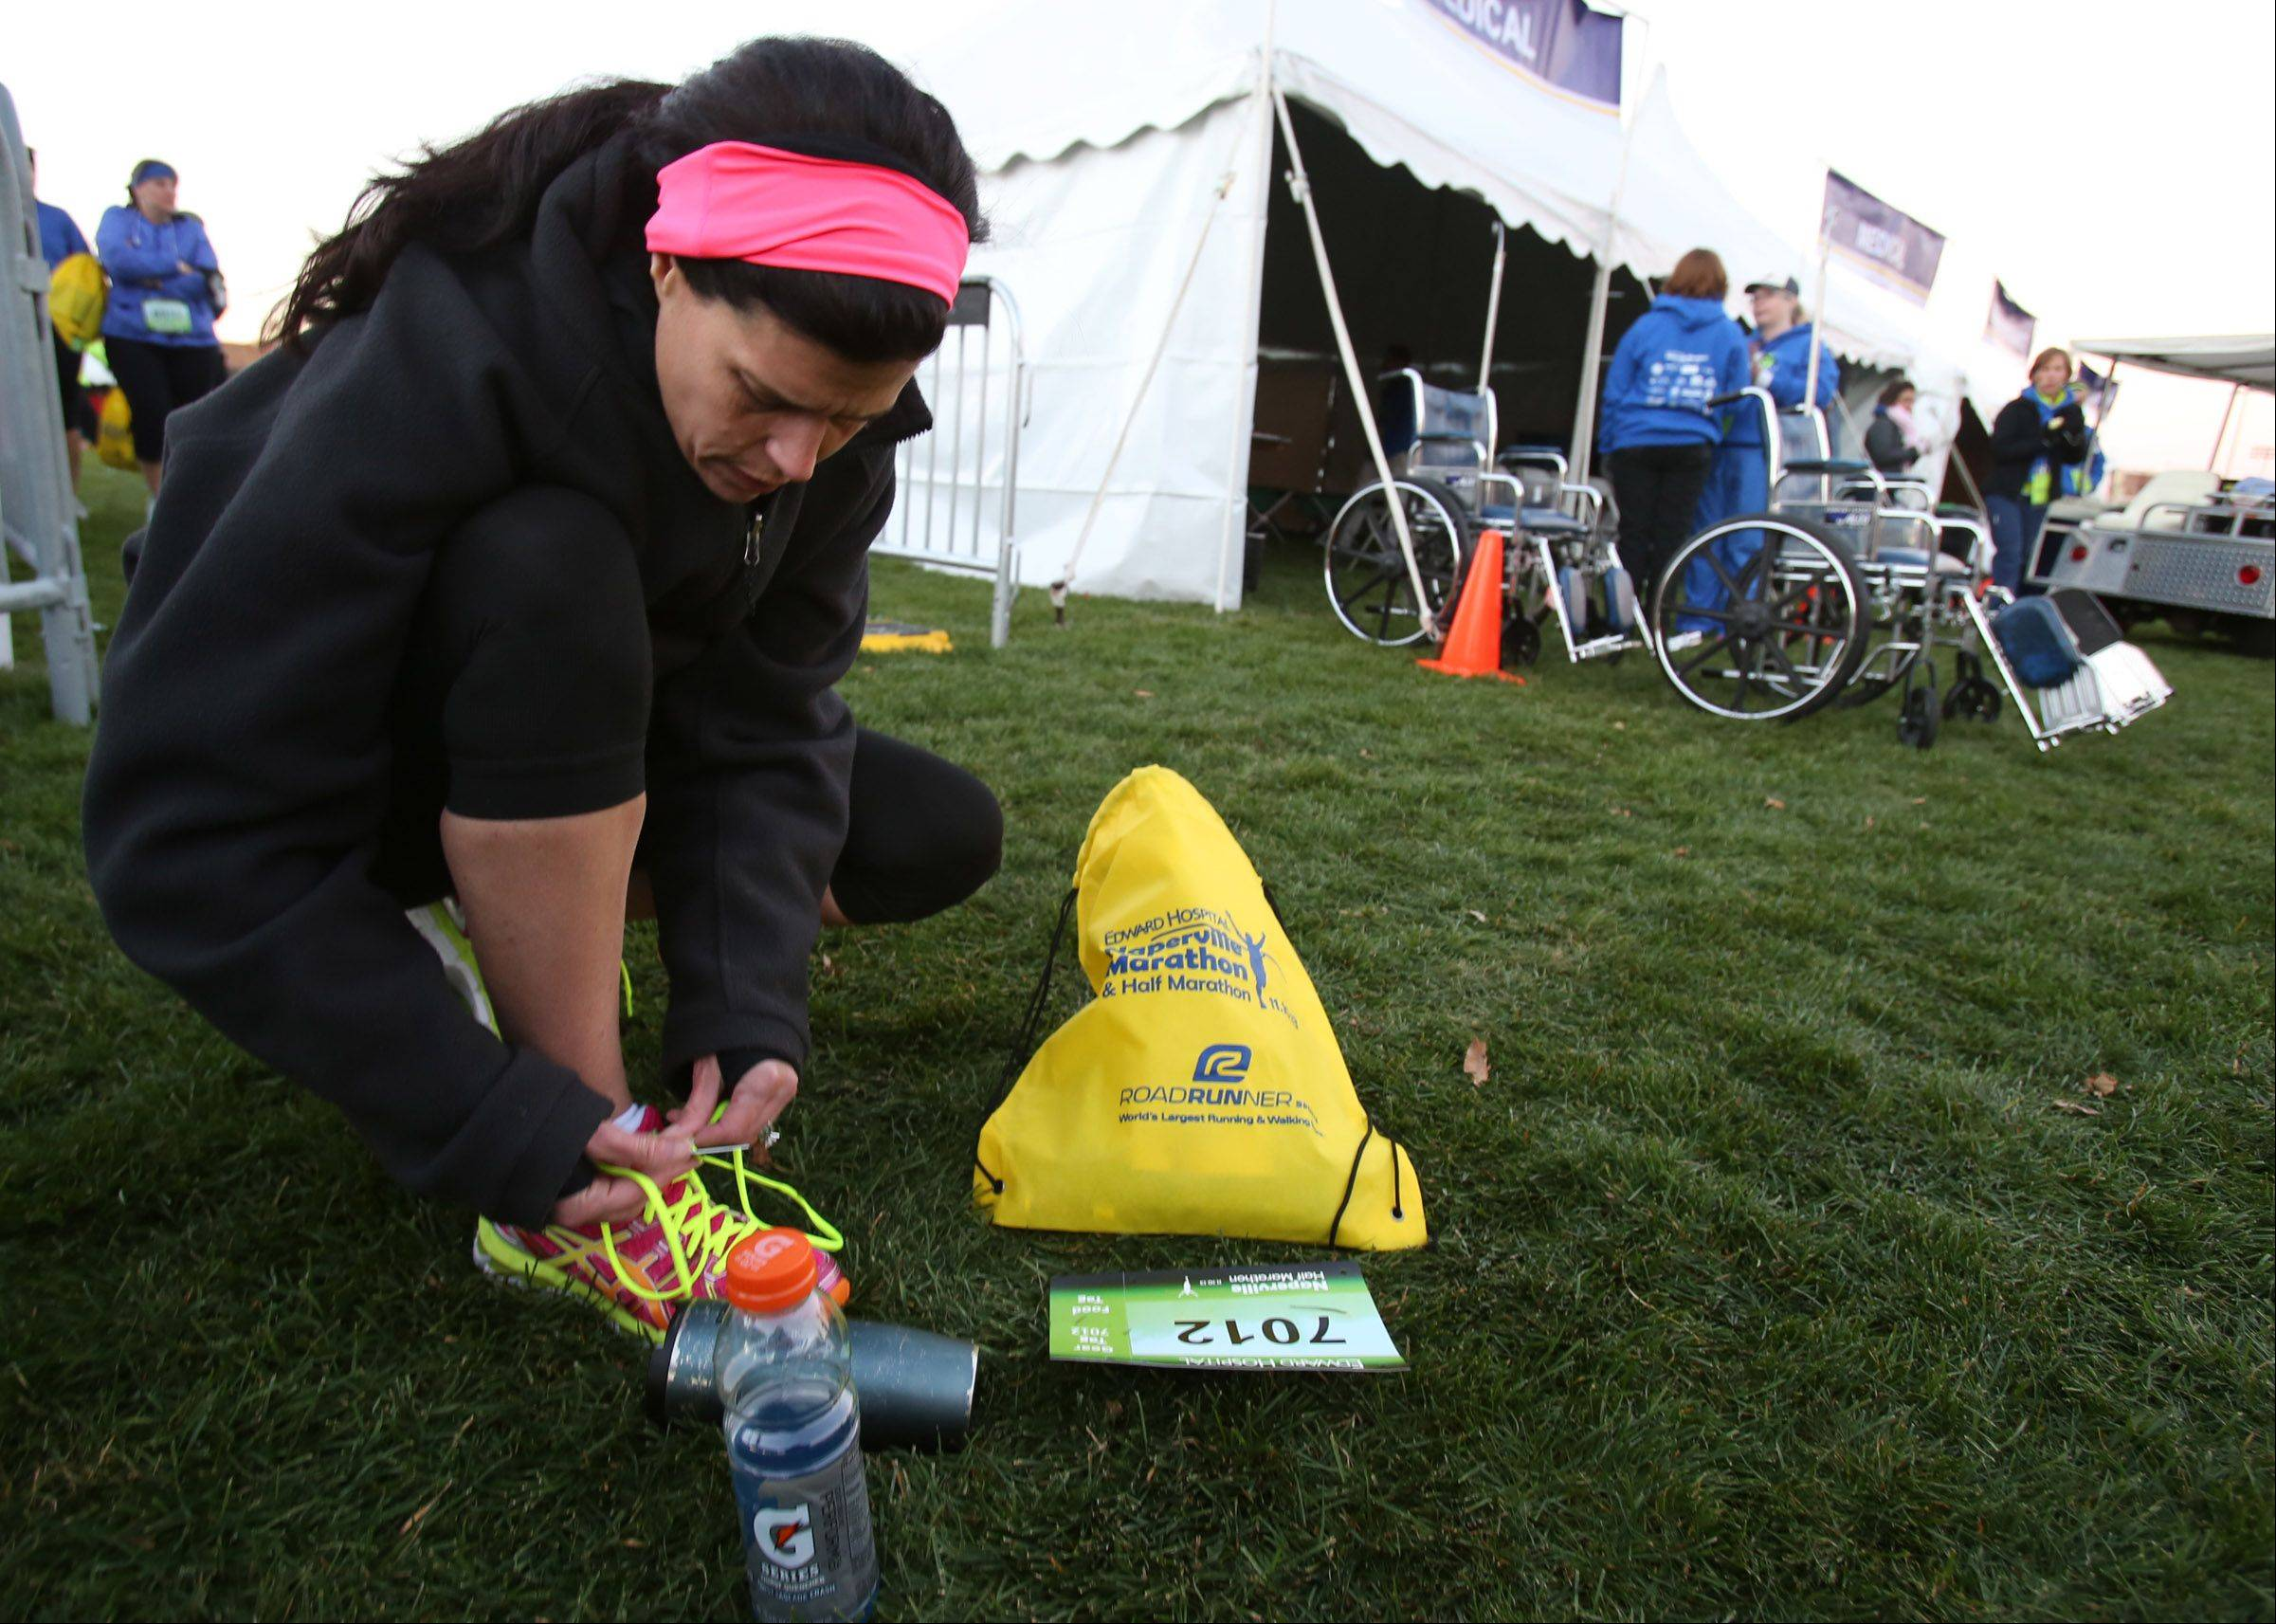 Louise Bornhofen prepares for the start of the Edward Hospital Naperville Marathon on Sunday, November 10, 2013.